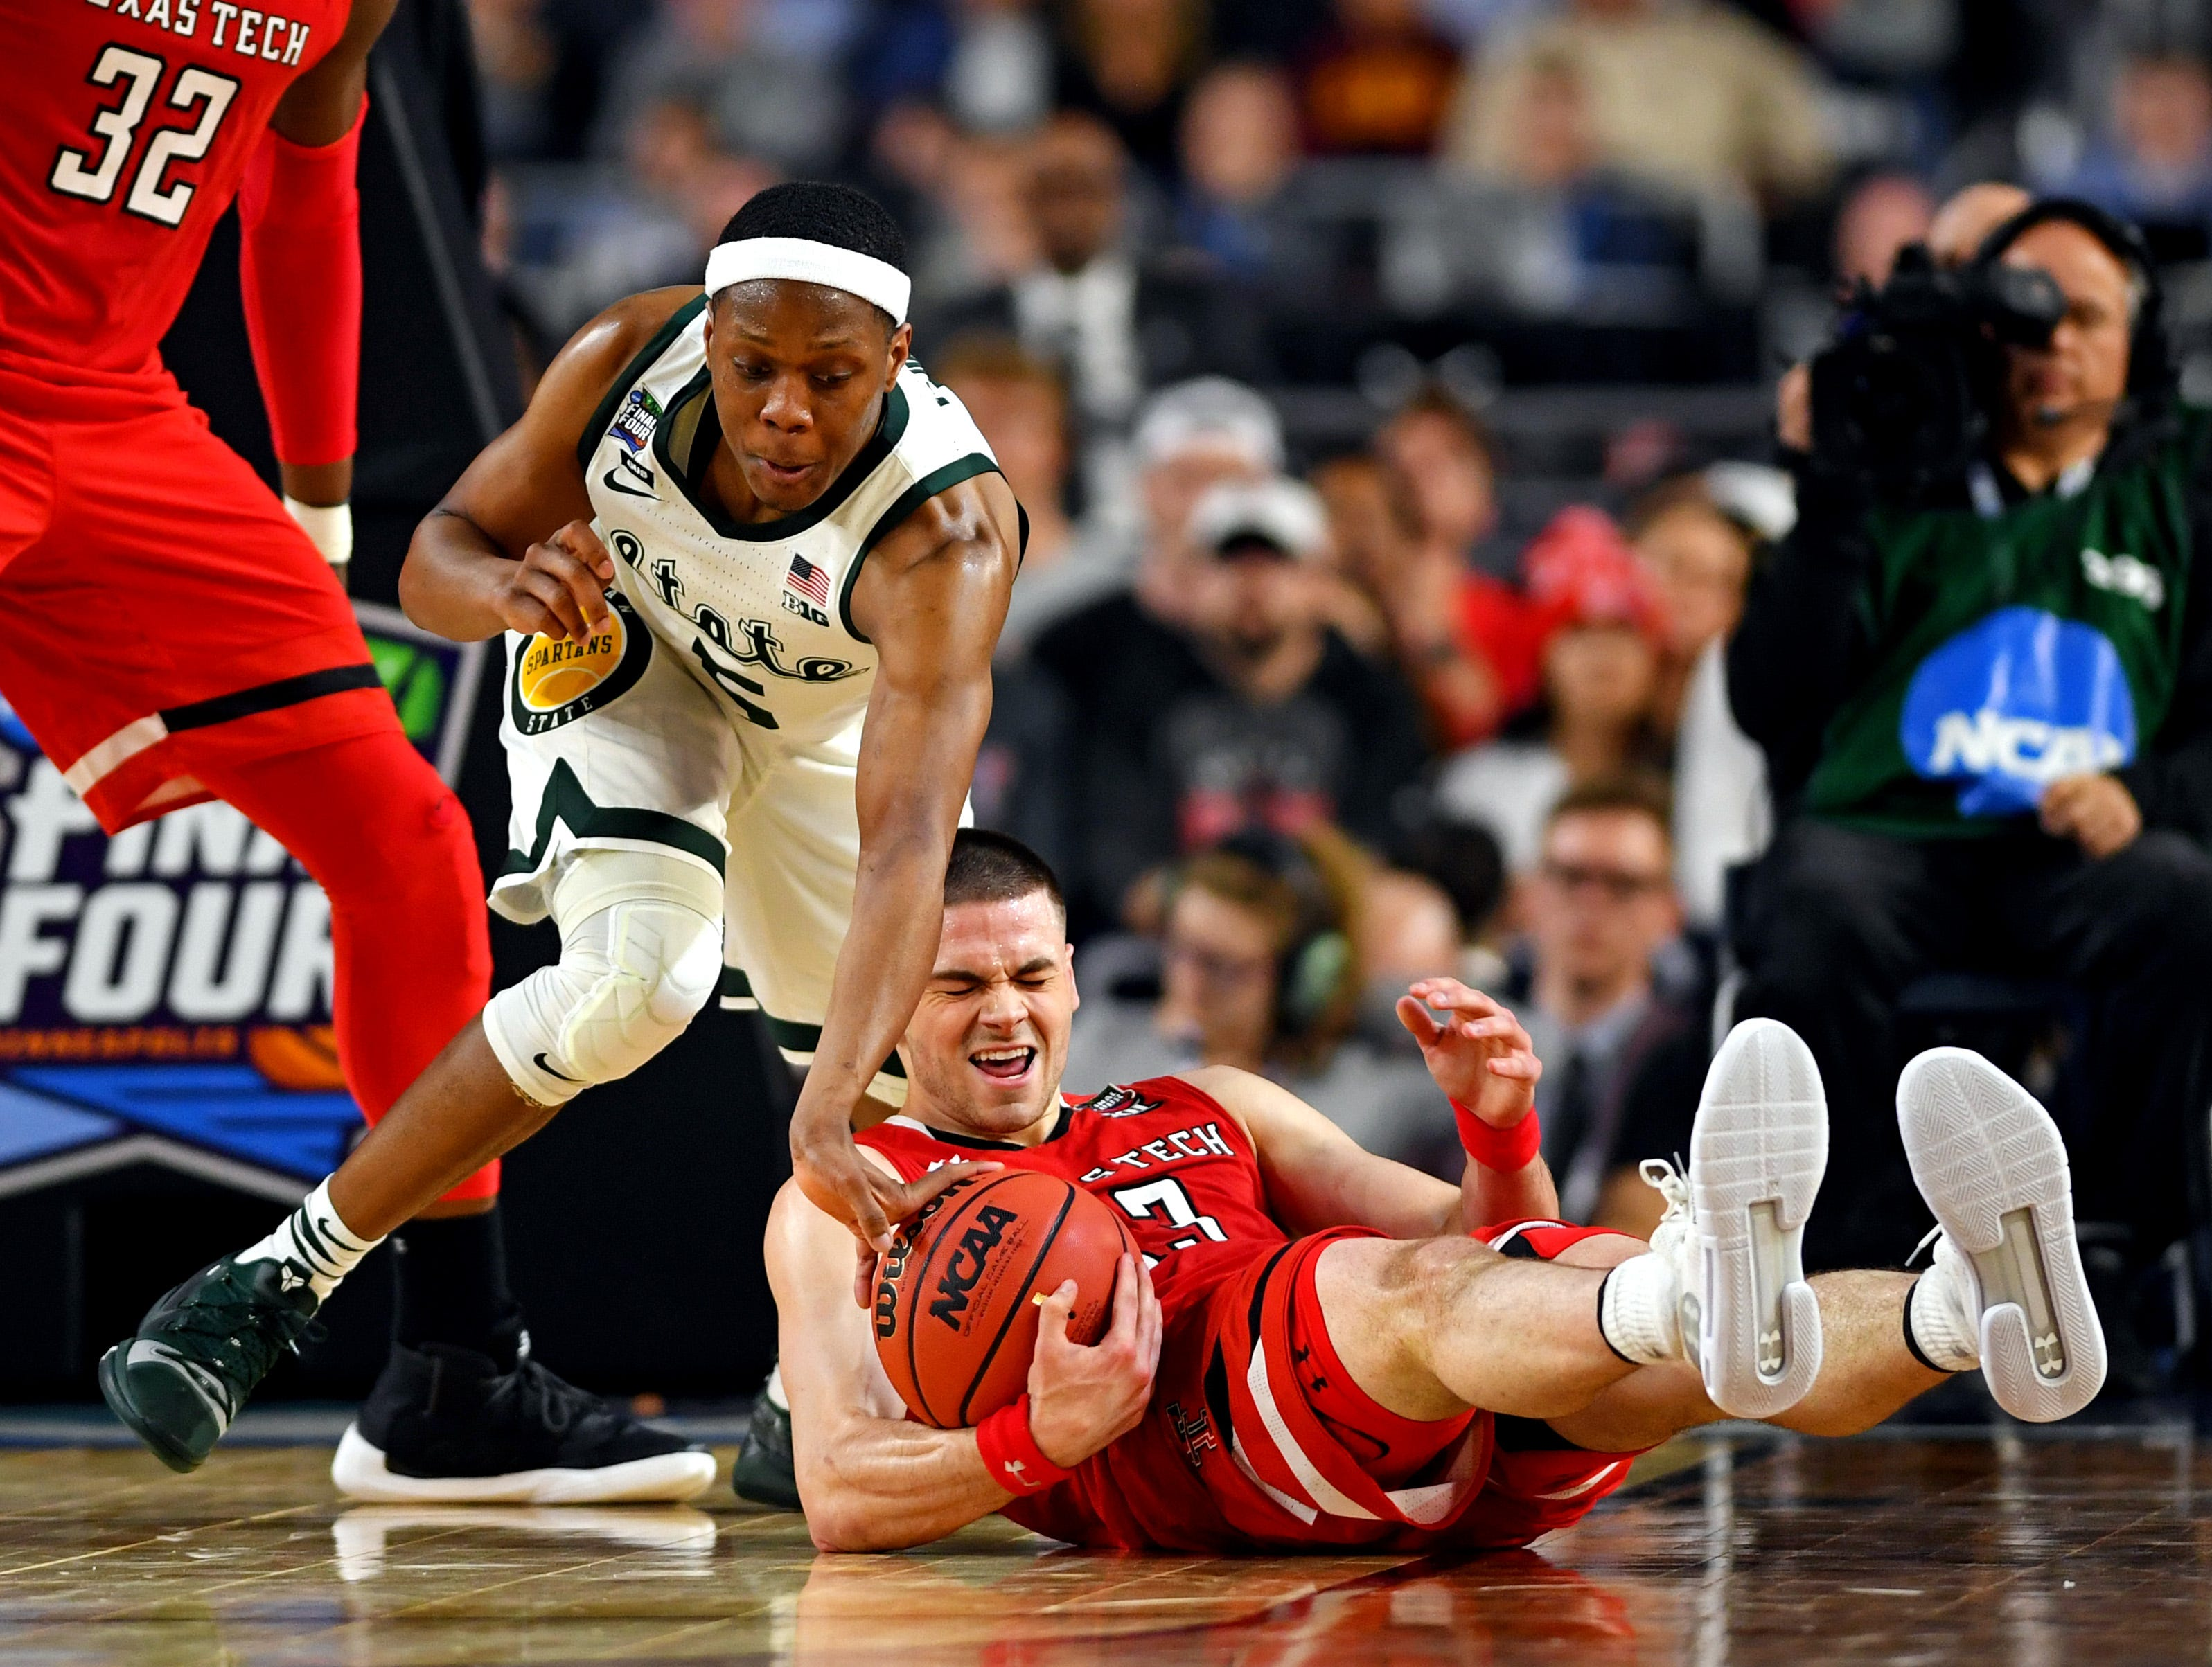 Texas Tech Red Raiders guard Matt Mooney (13) falls to the court as Michigan State Spartans guard Cassius Winston (5) goes for the ball.